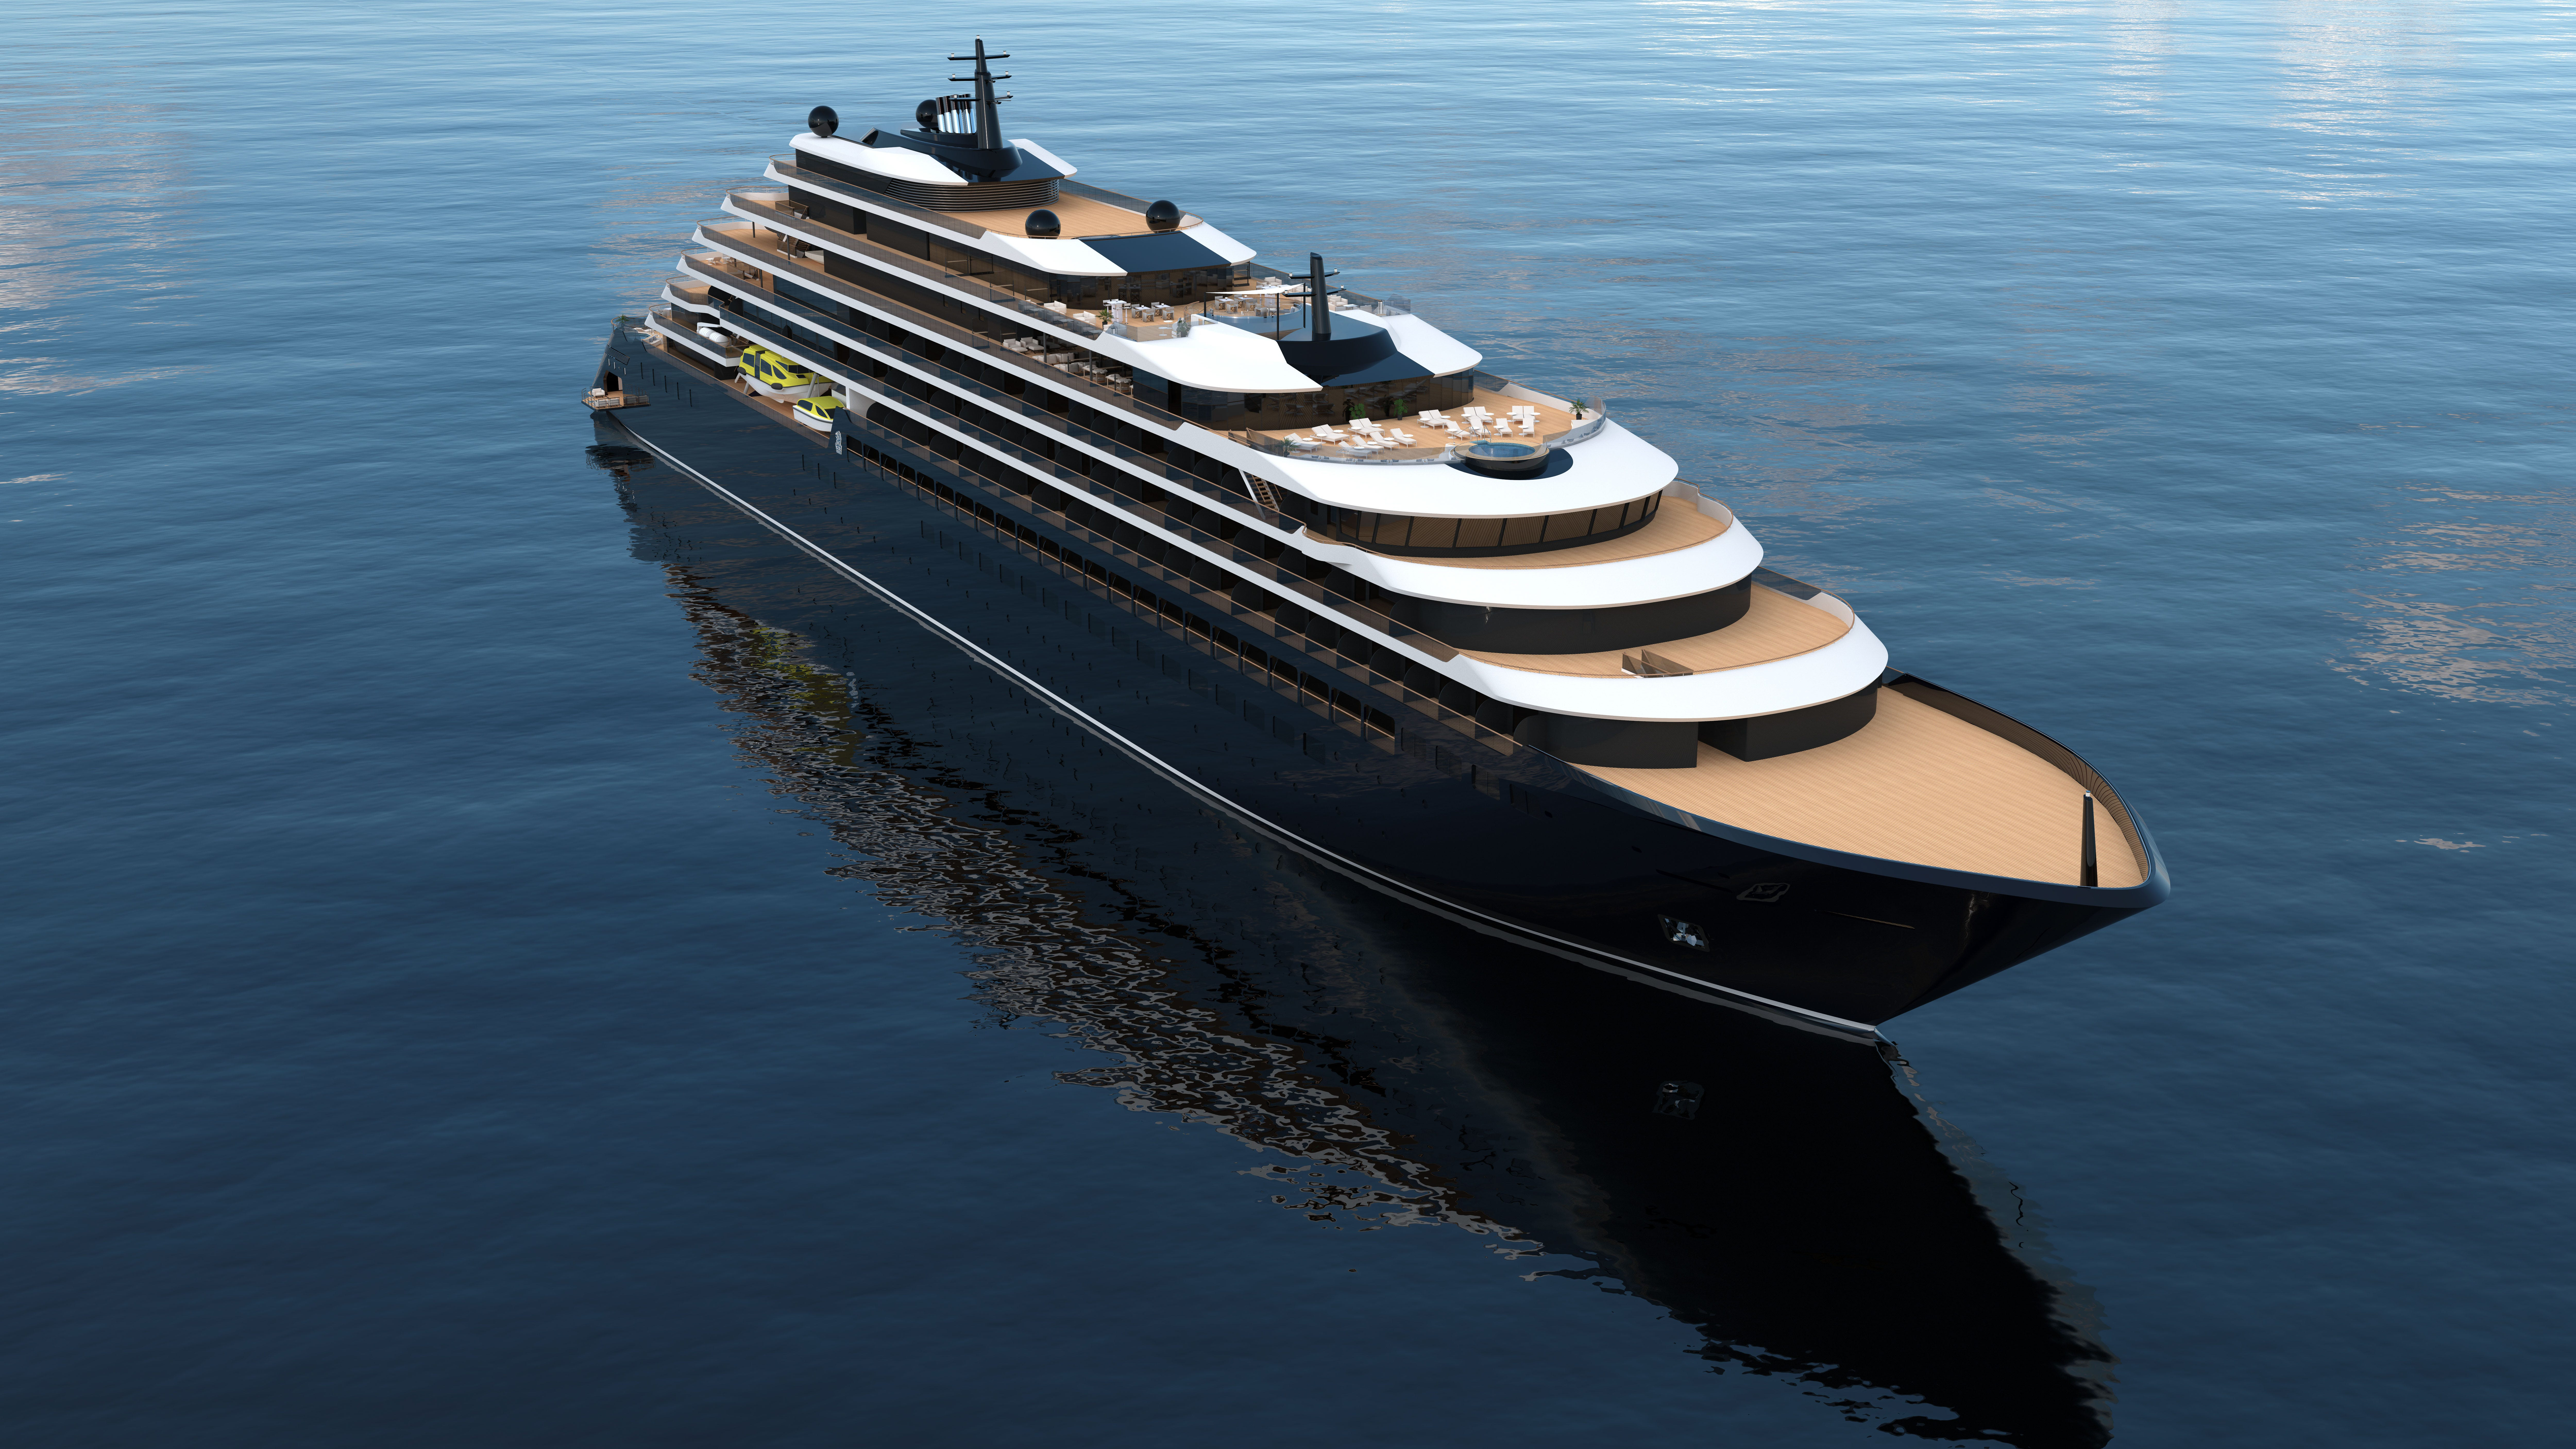 Ritz-Carlton cruise ship takes to the water in Spain; Service starts in late 2019